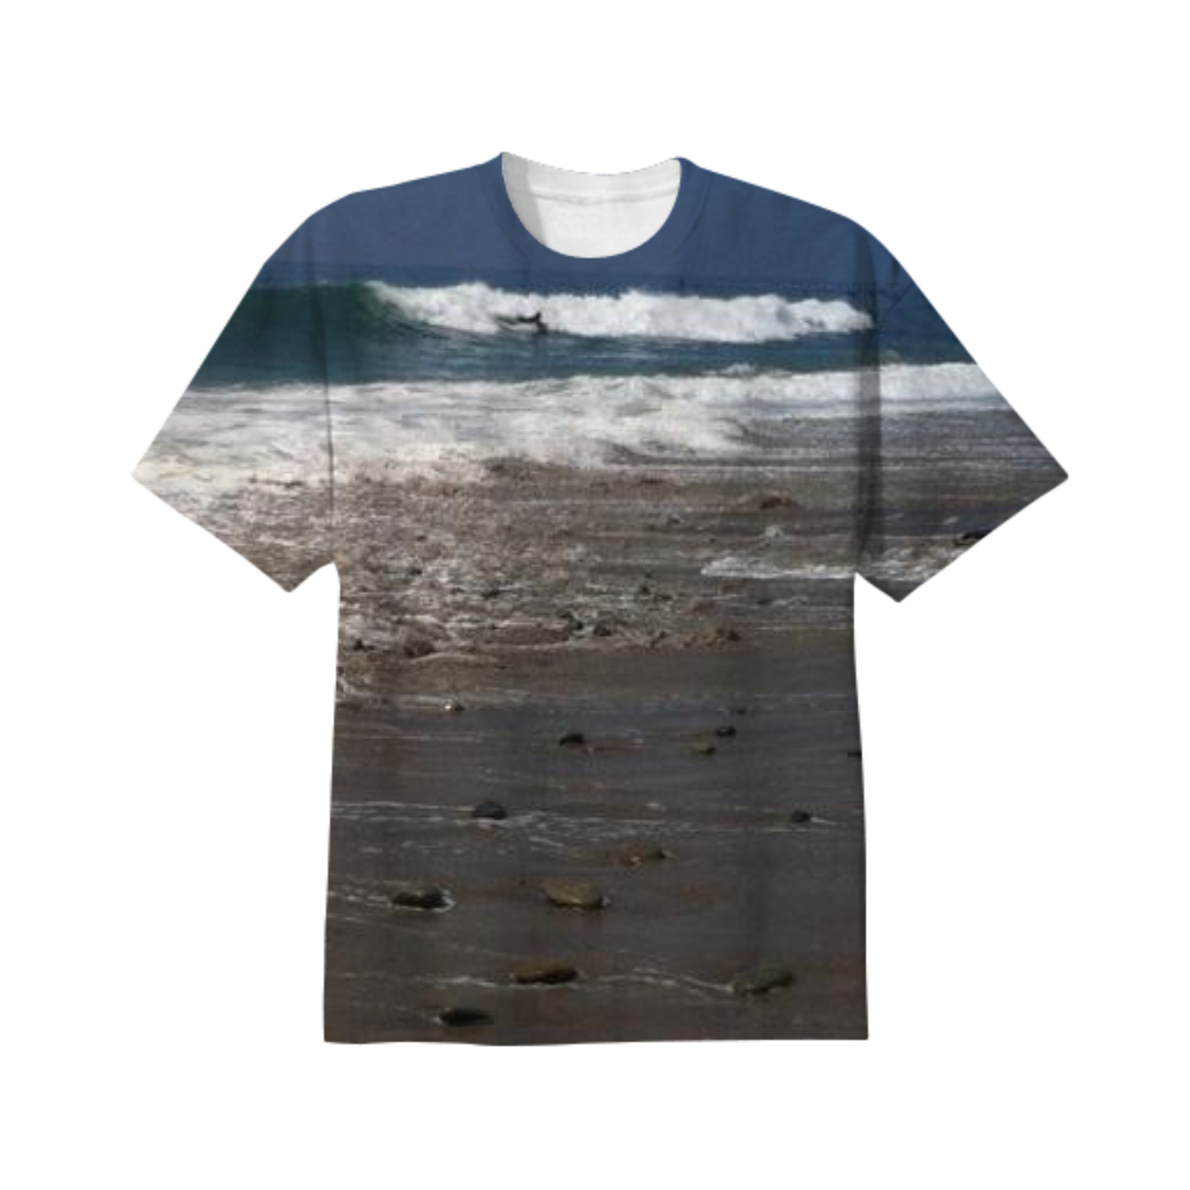 Malibu Wave Tee from Print All Over Me